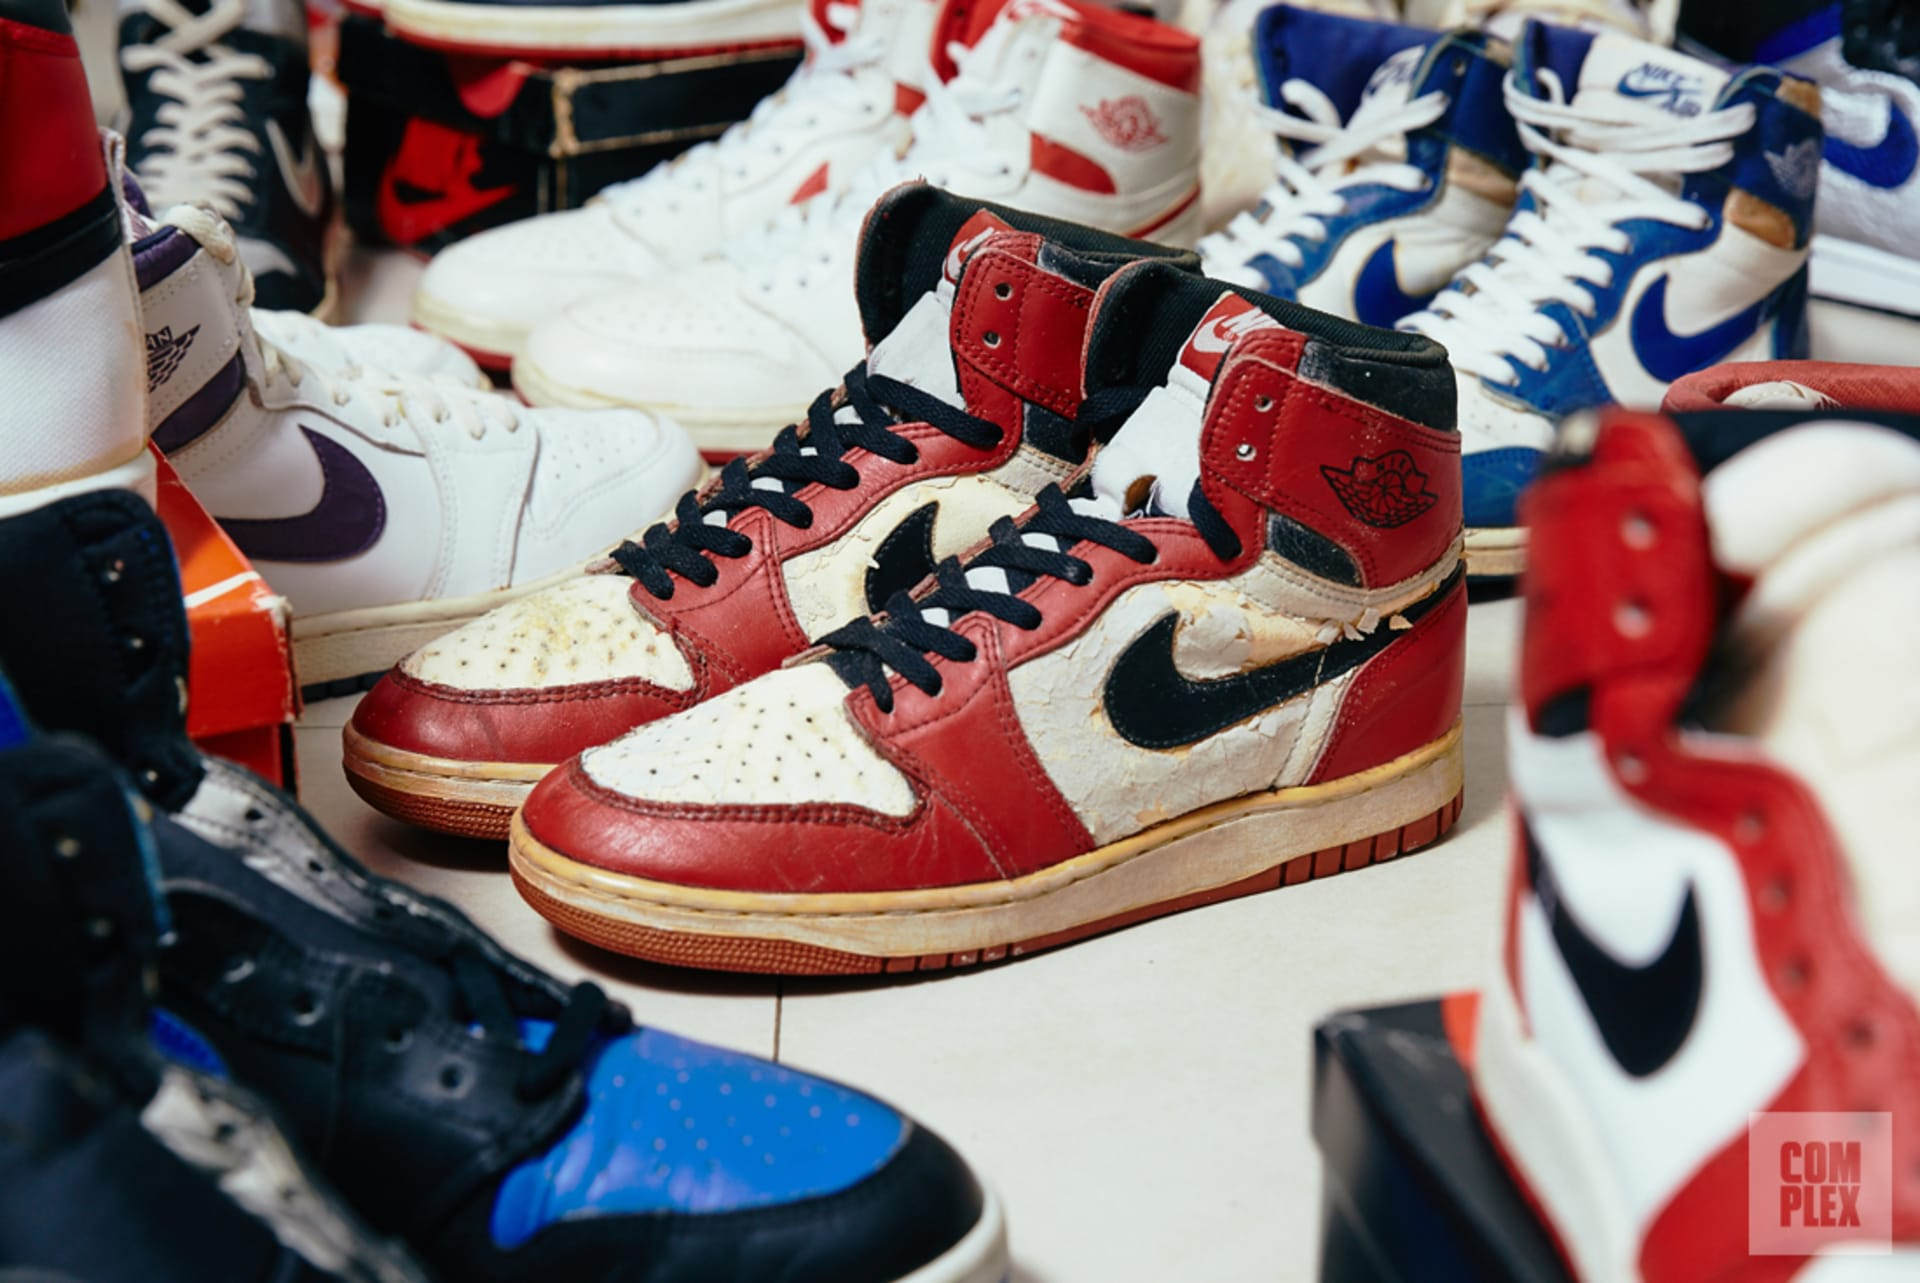 Meet the 17-Year-Old With the Best O.G. Air Jordan 1 Collection ...